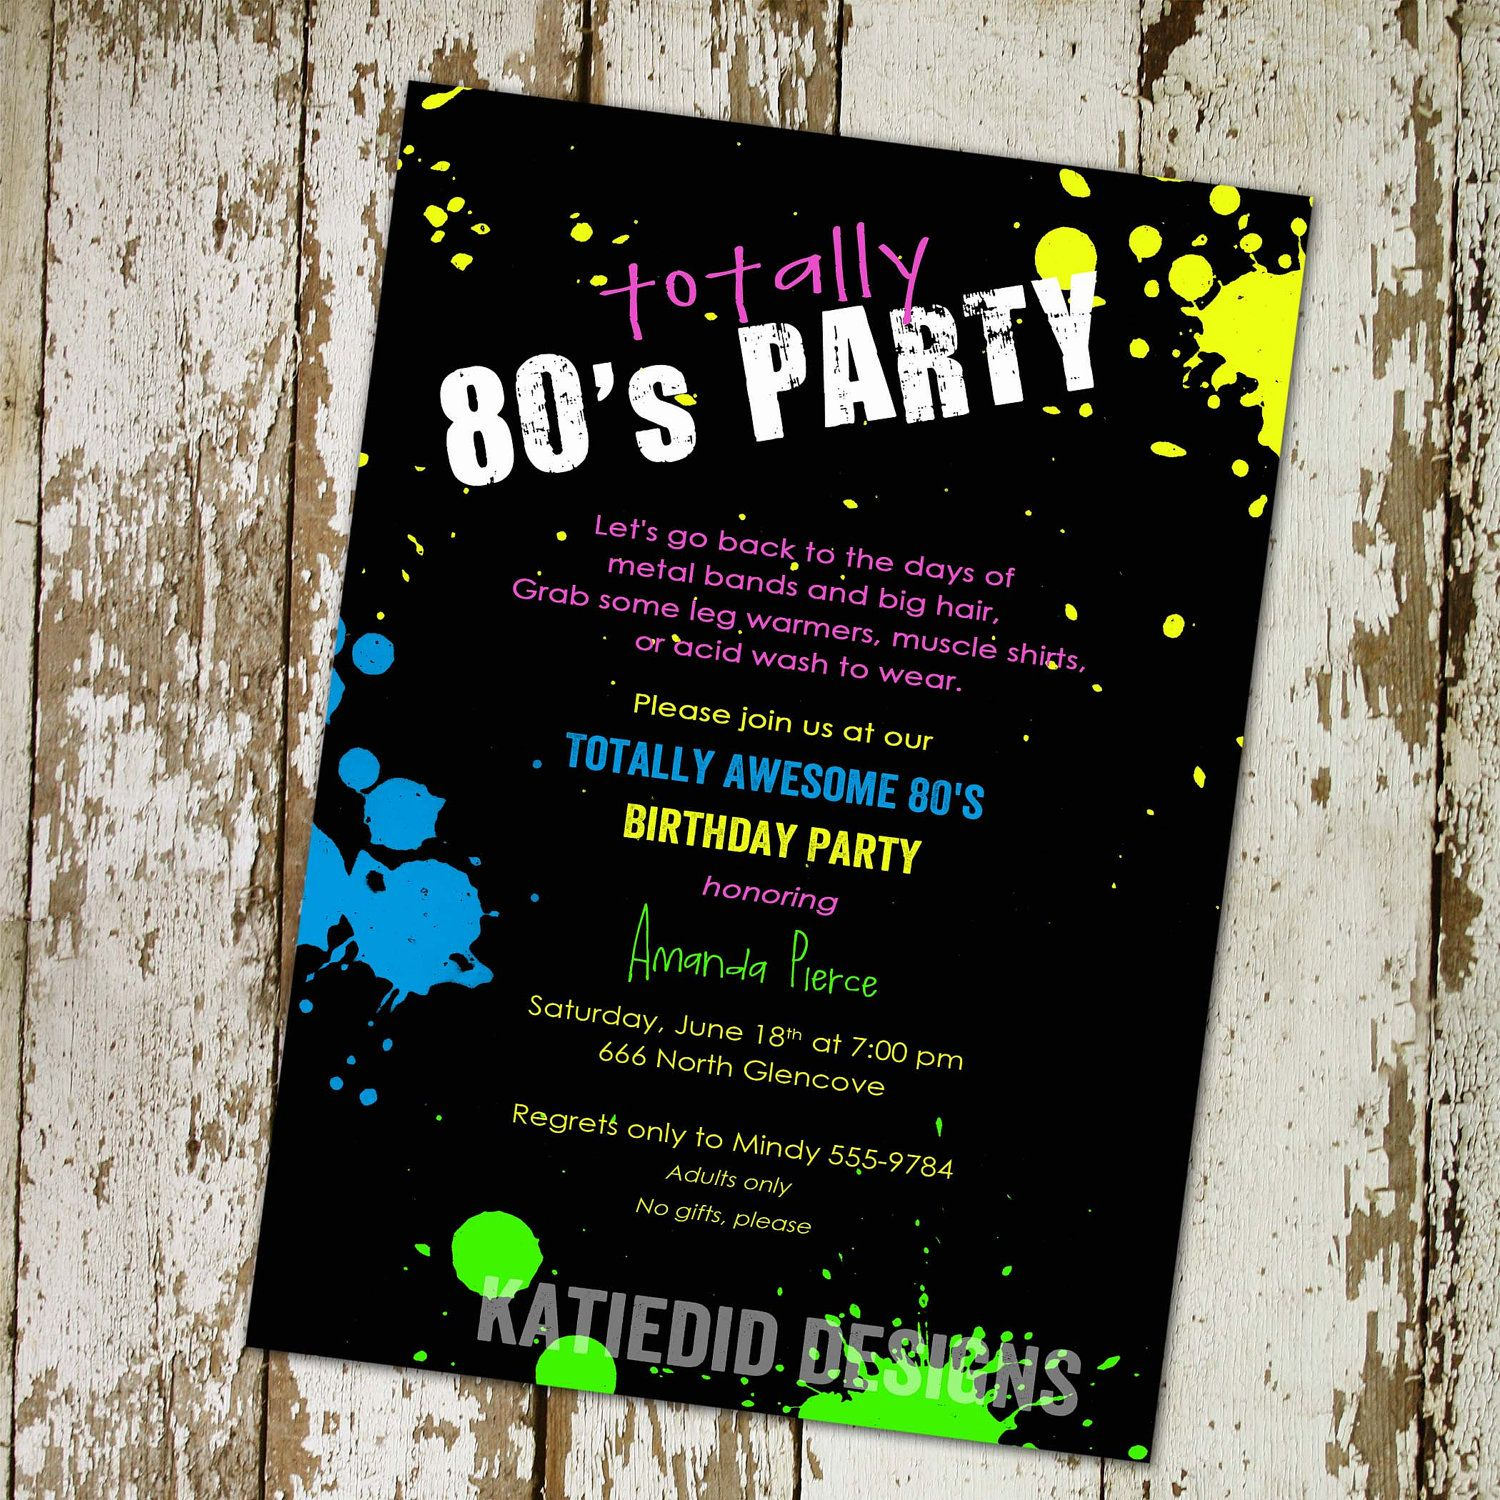 80s themed birthday party invitations, Totally 80s party, digital ...